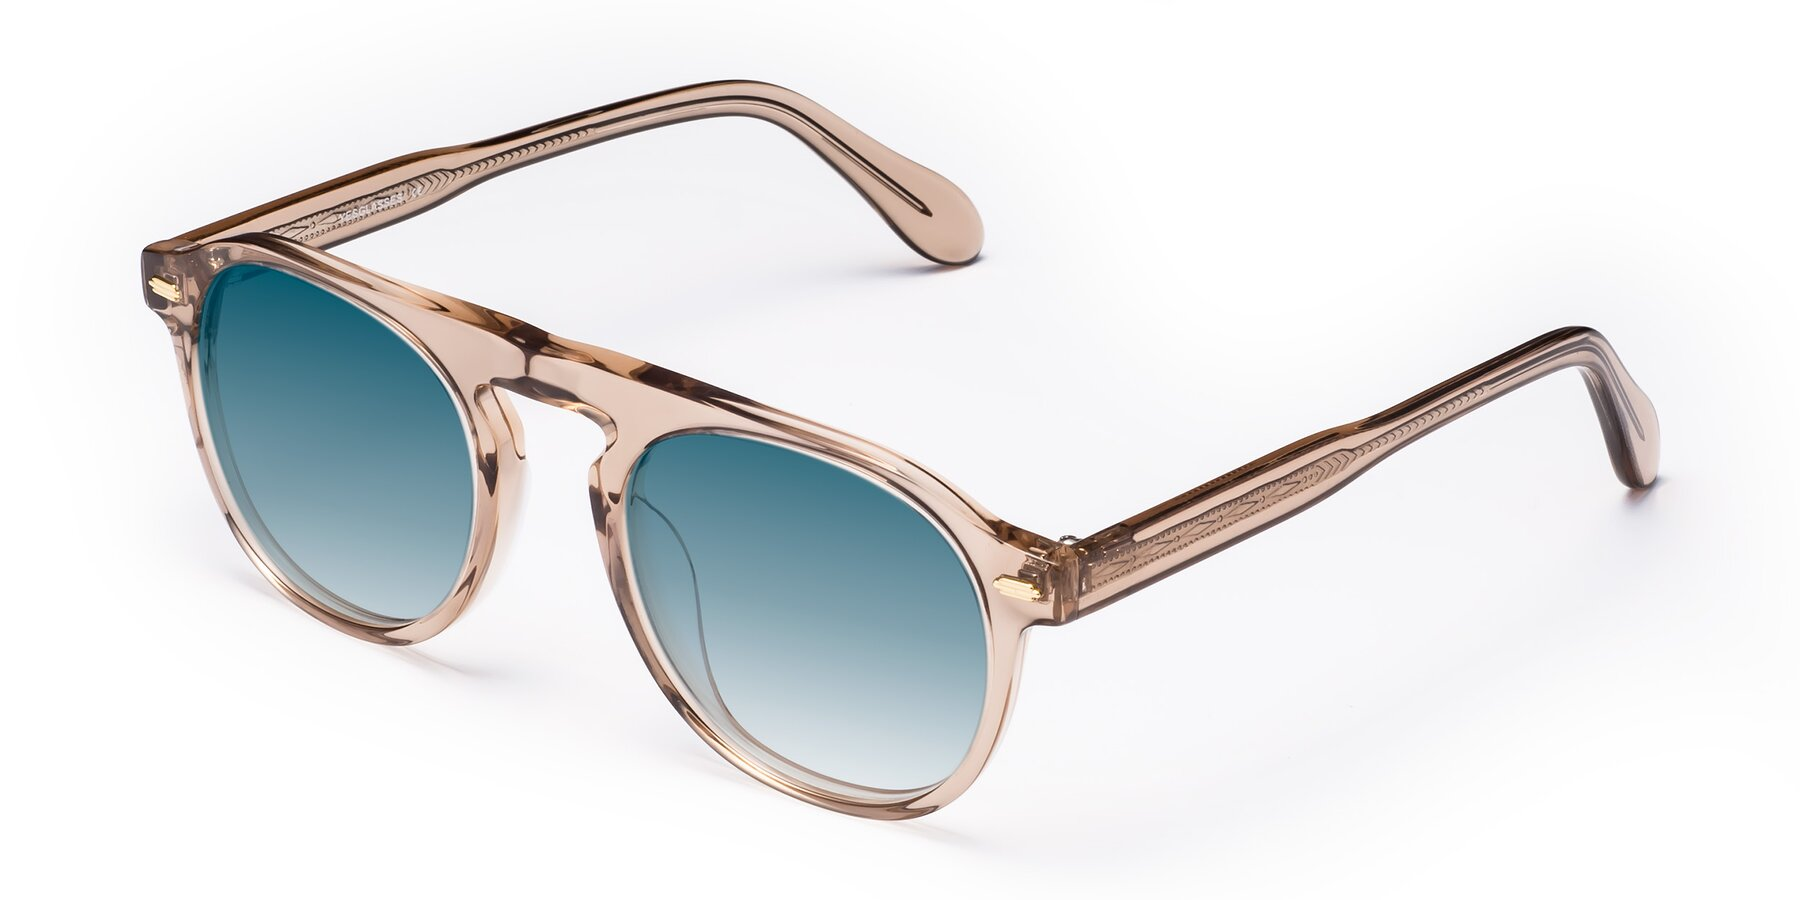 Angle of Mufasa in light Brown with Blue Gradient Lenses